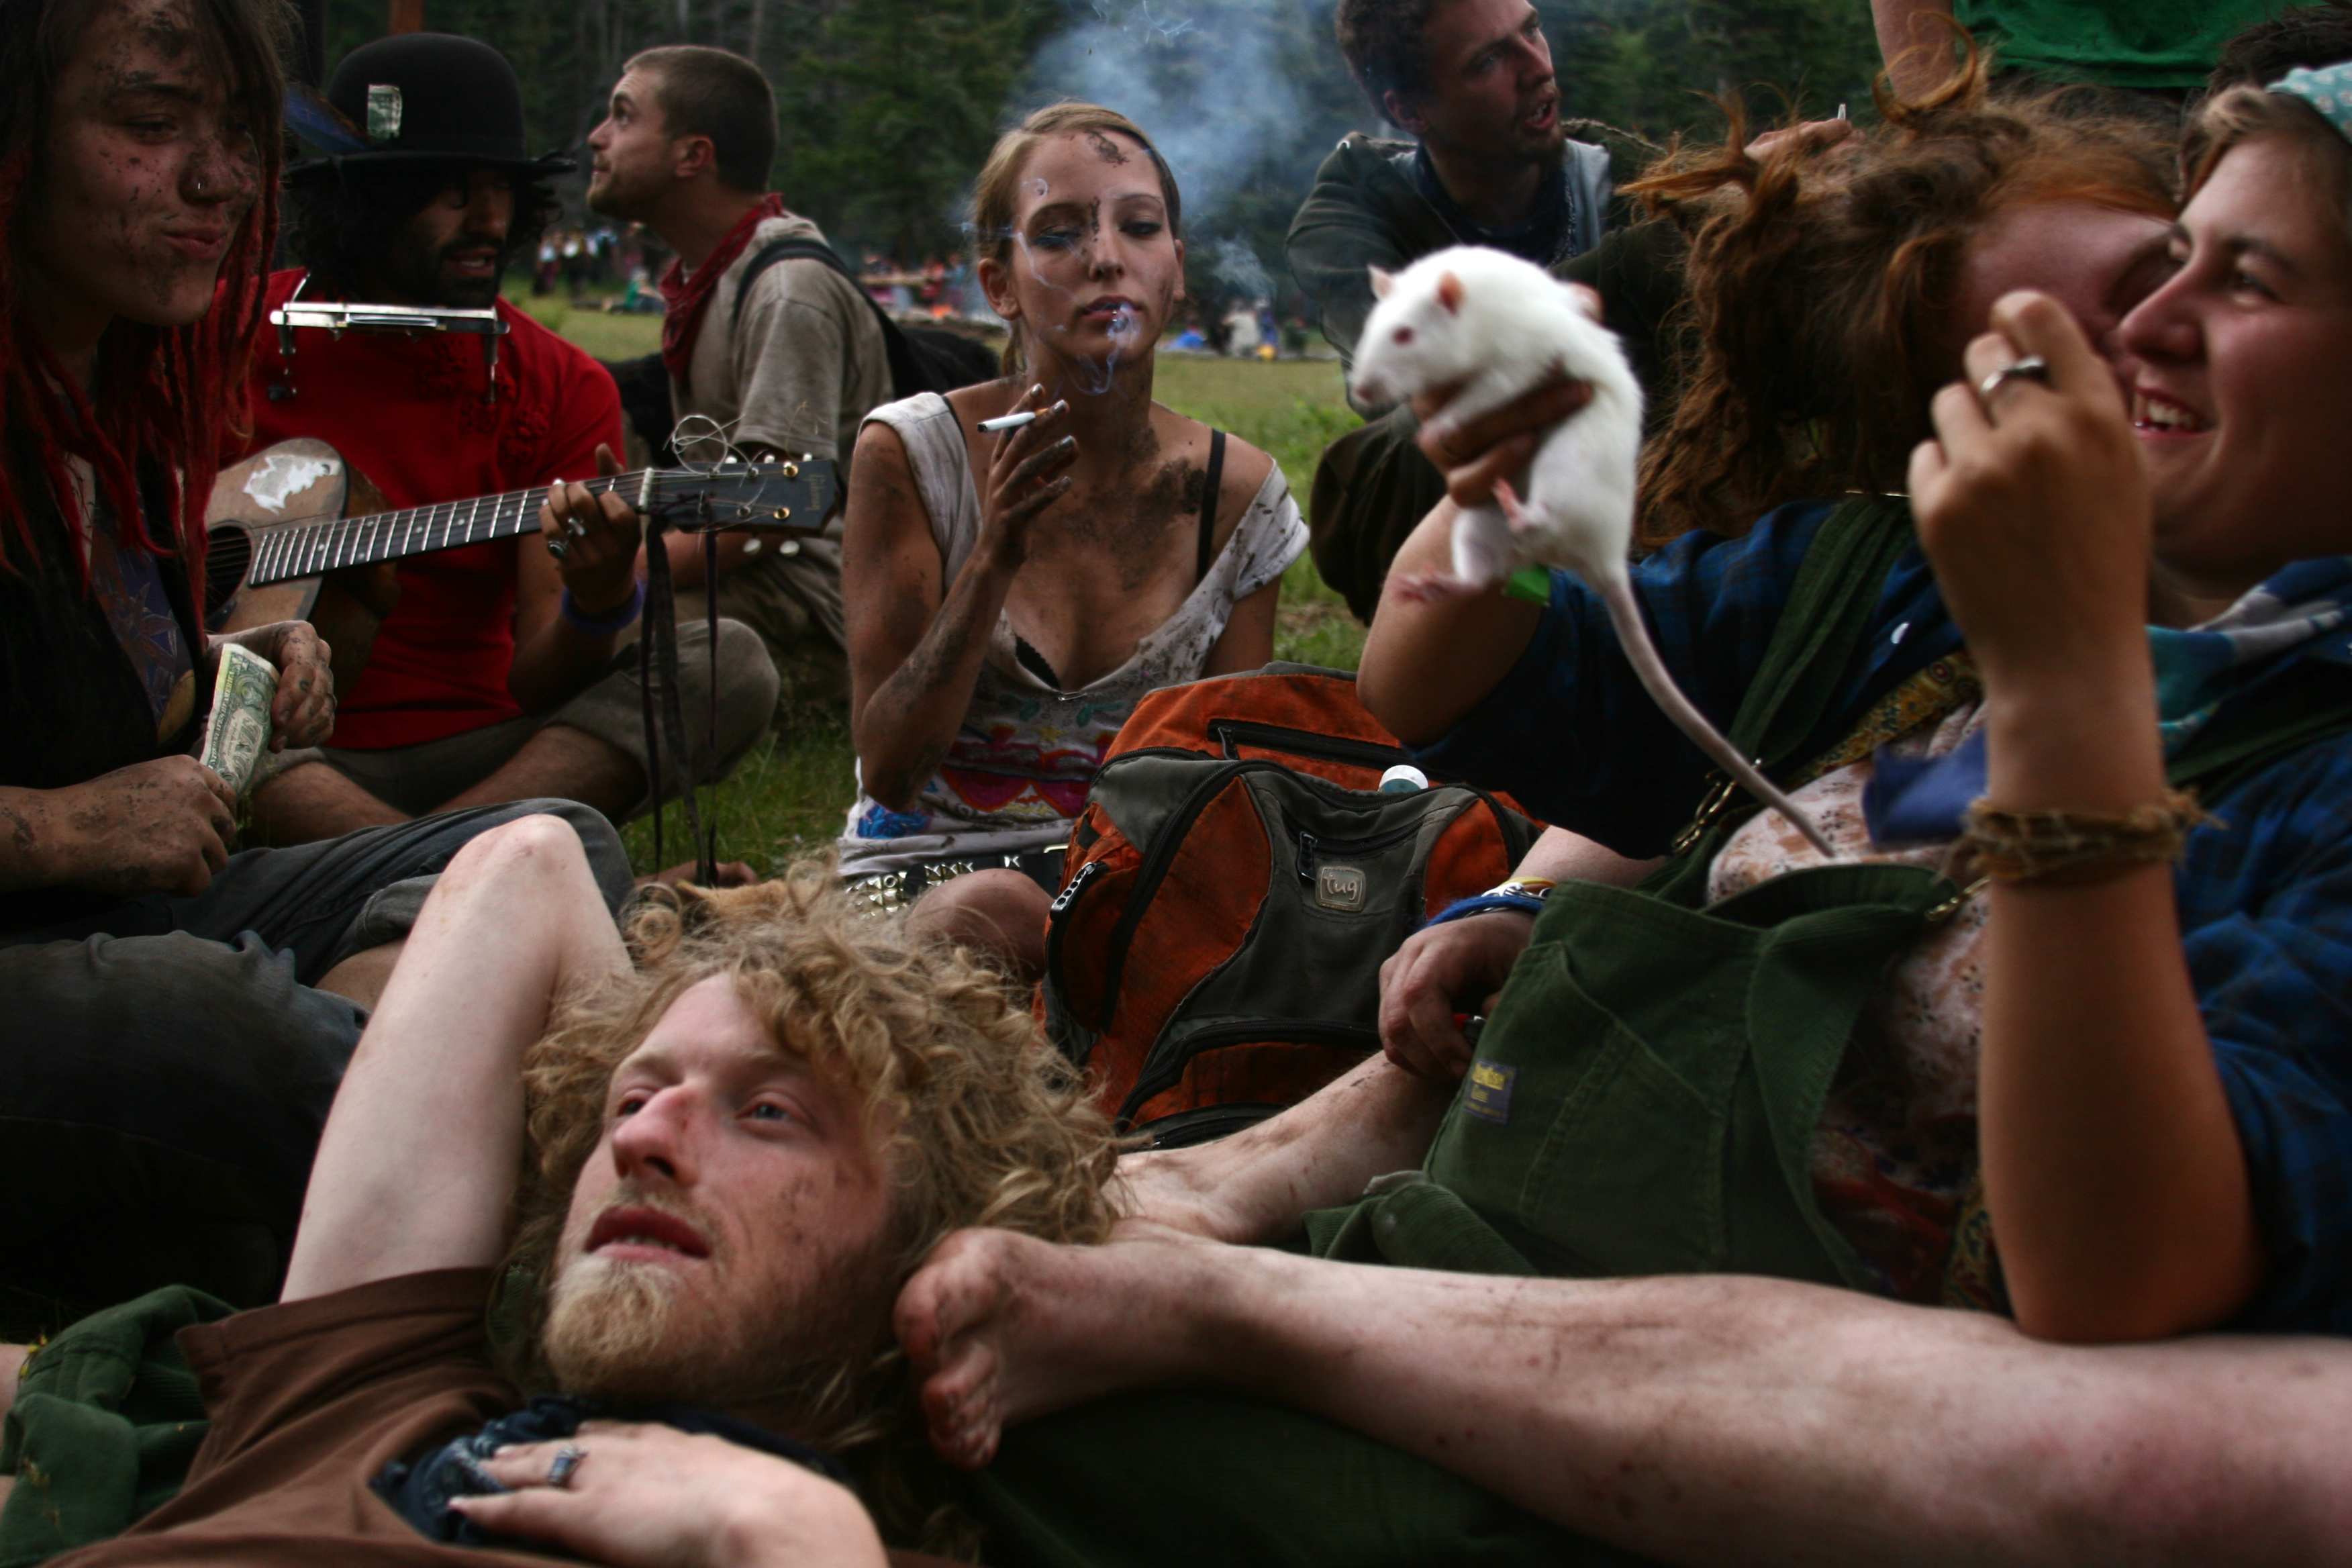 """Young nomads congregate at the """"Dirty Kids Corner"""" at the National Rainbow Gathering in the Santa Fe National Forest, New Mexico. July 2009. Photo: Kitra Cahana"""